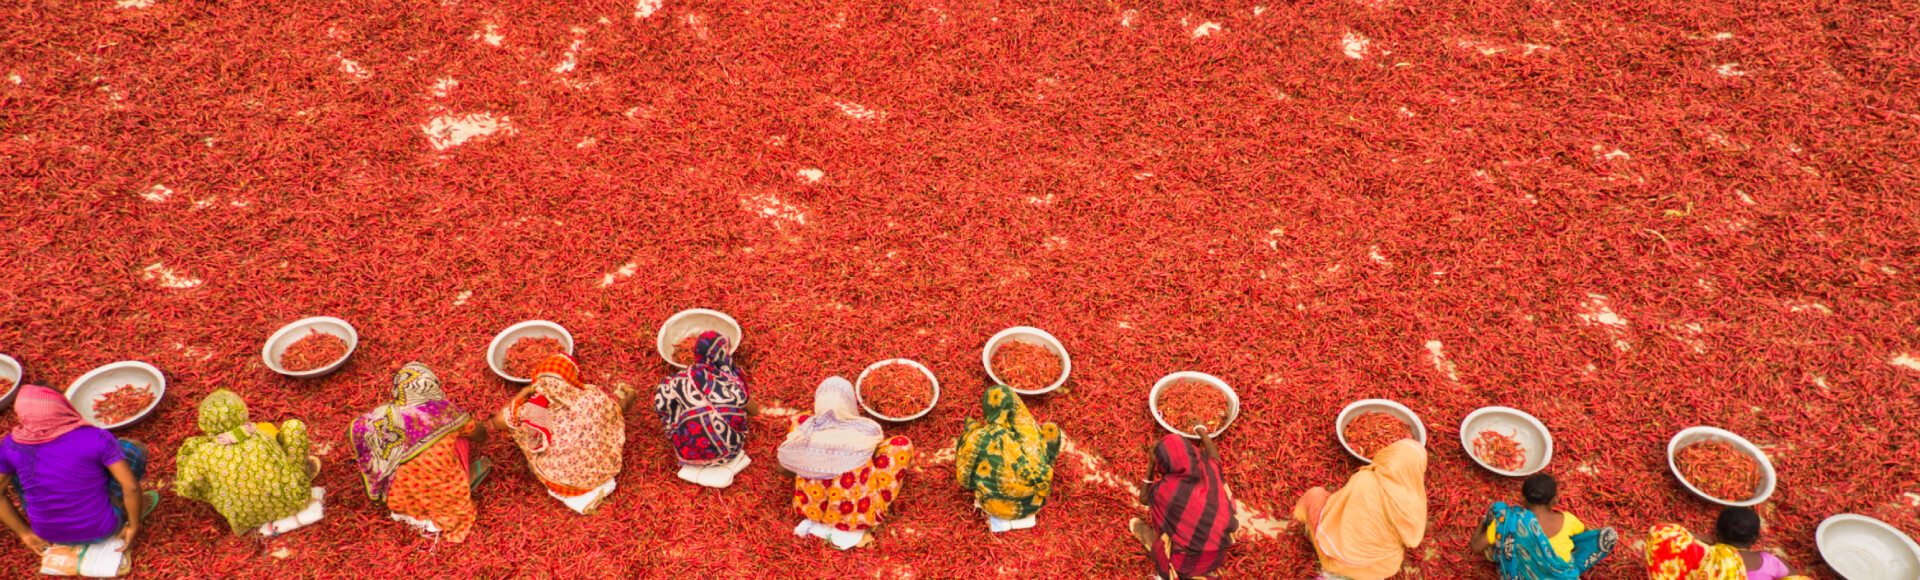 red-chilies-harvesting-field